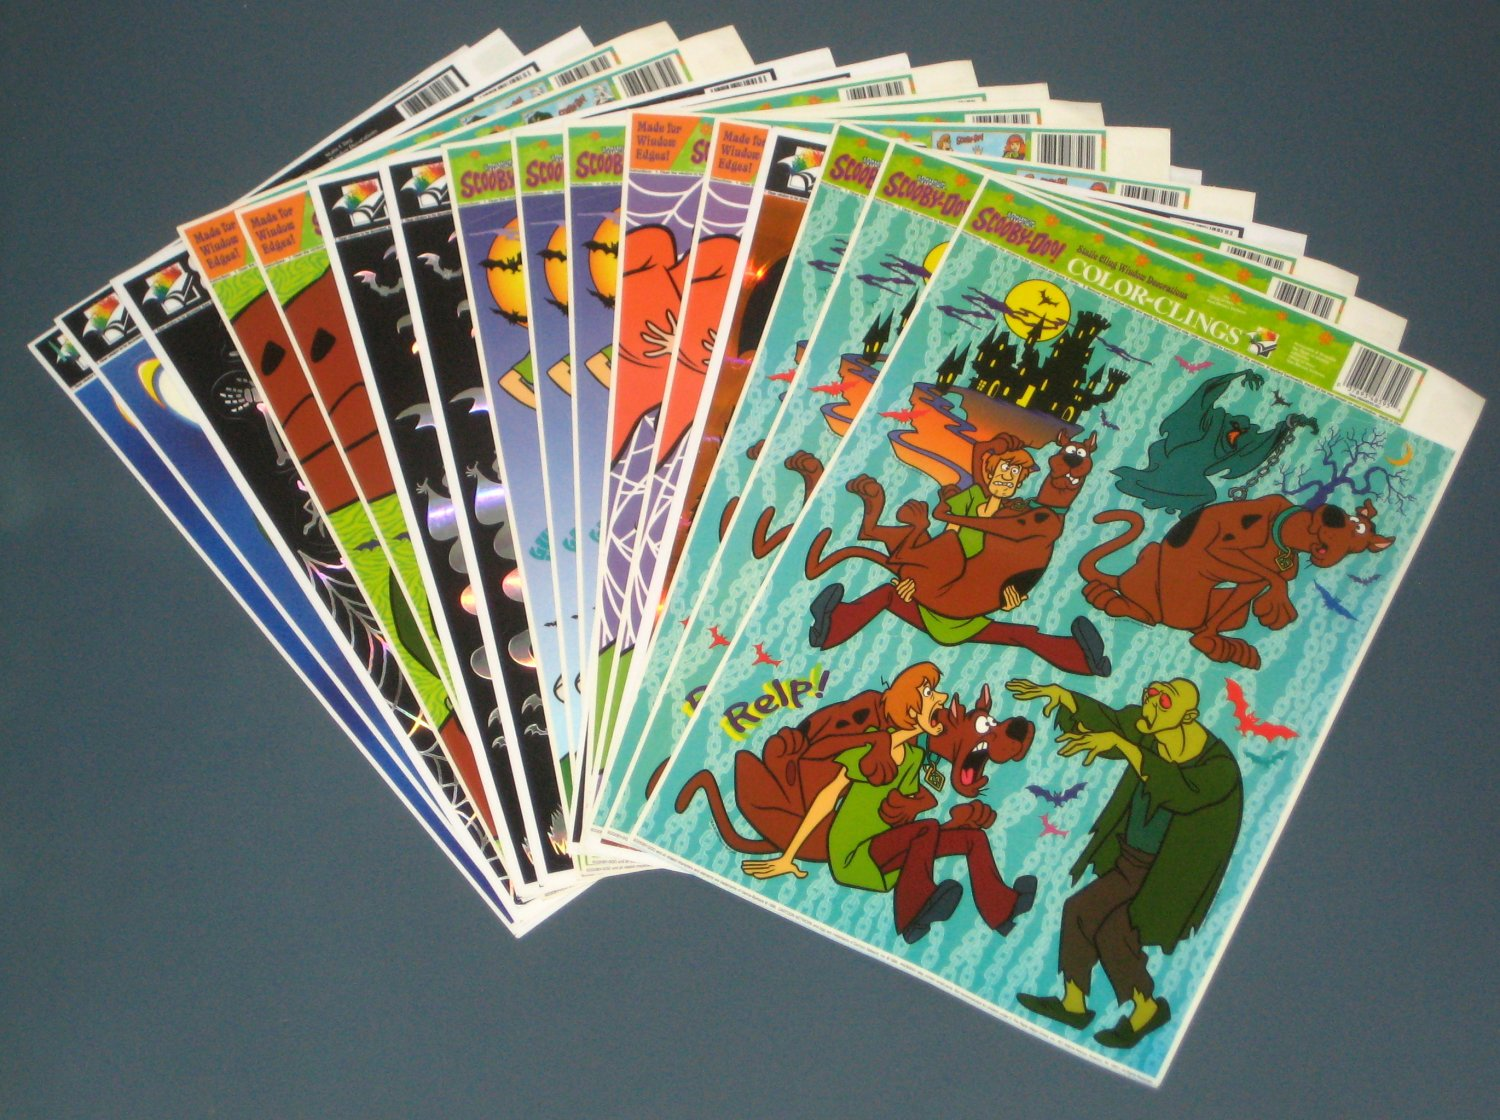 SOLD Halloween Static Window Clings Lot of 10 Unused Sheets Scooby Doo